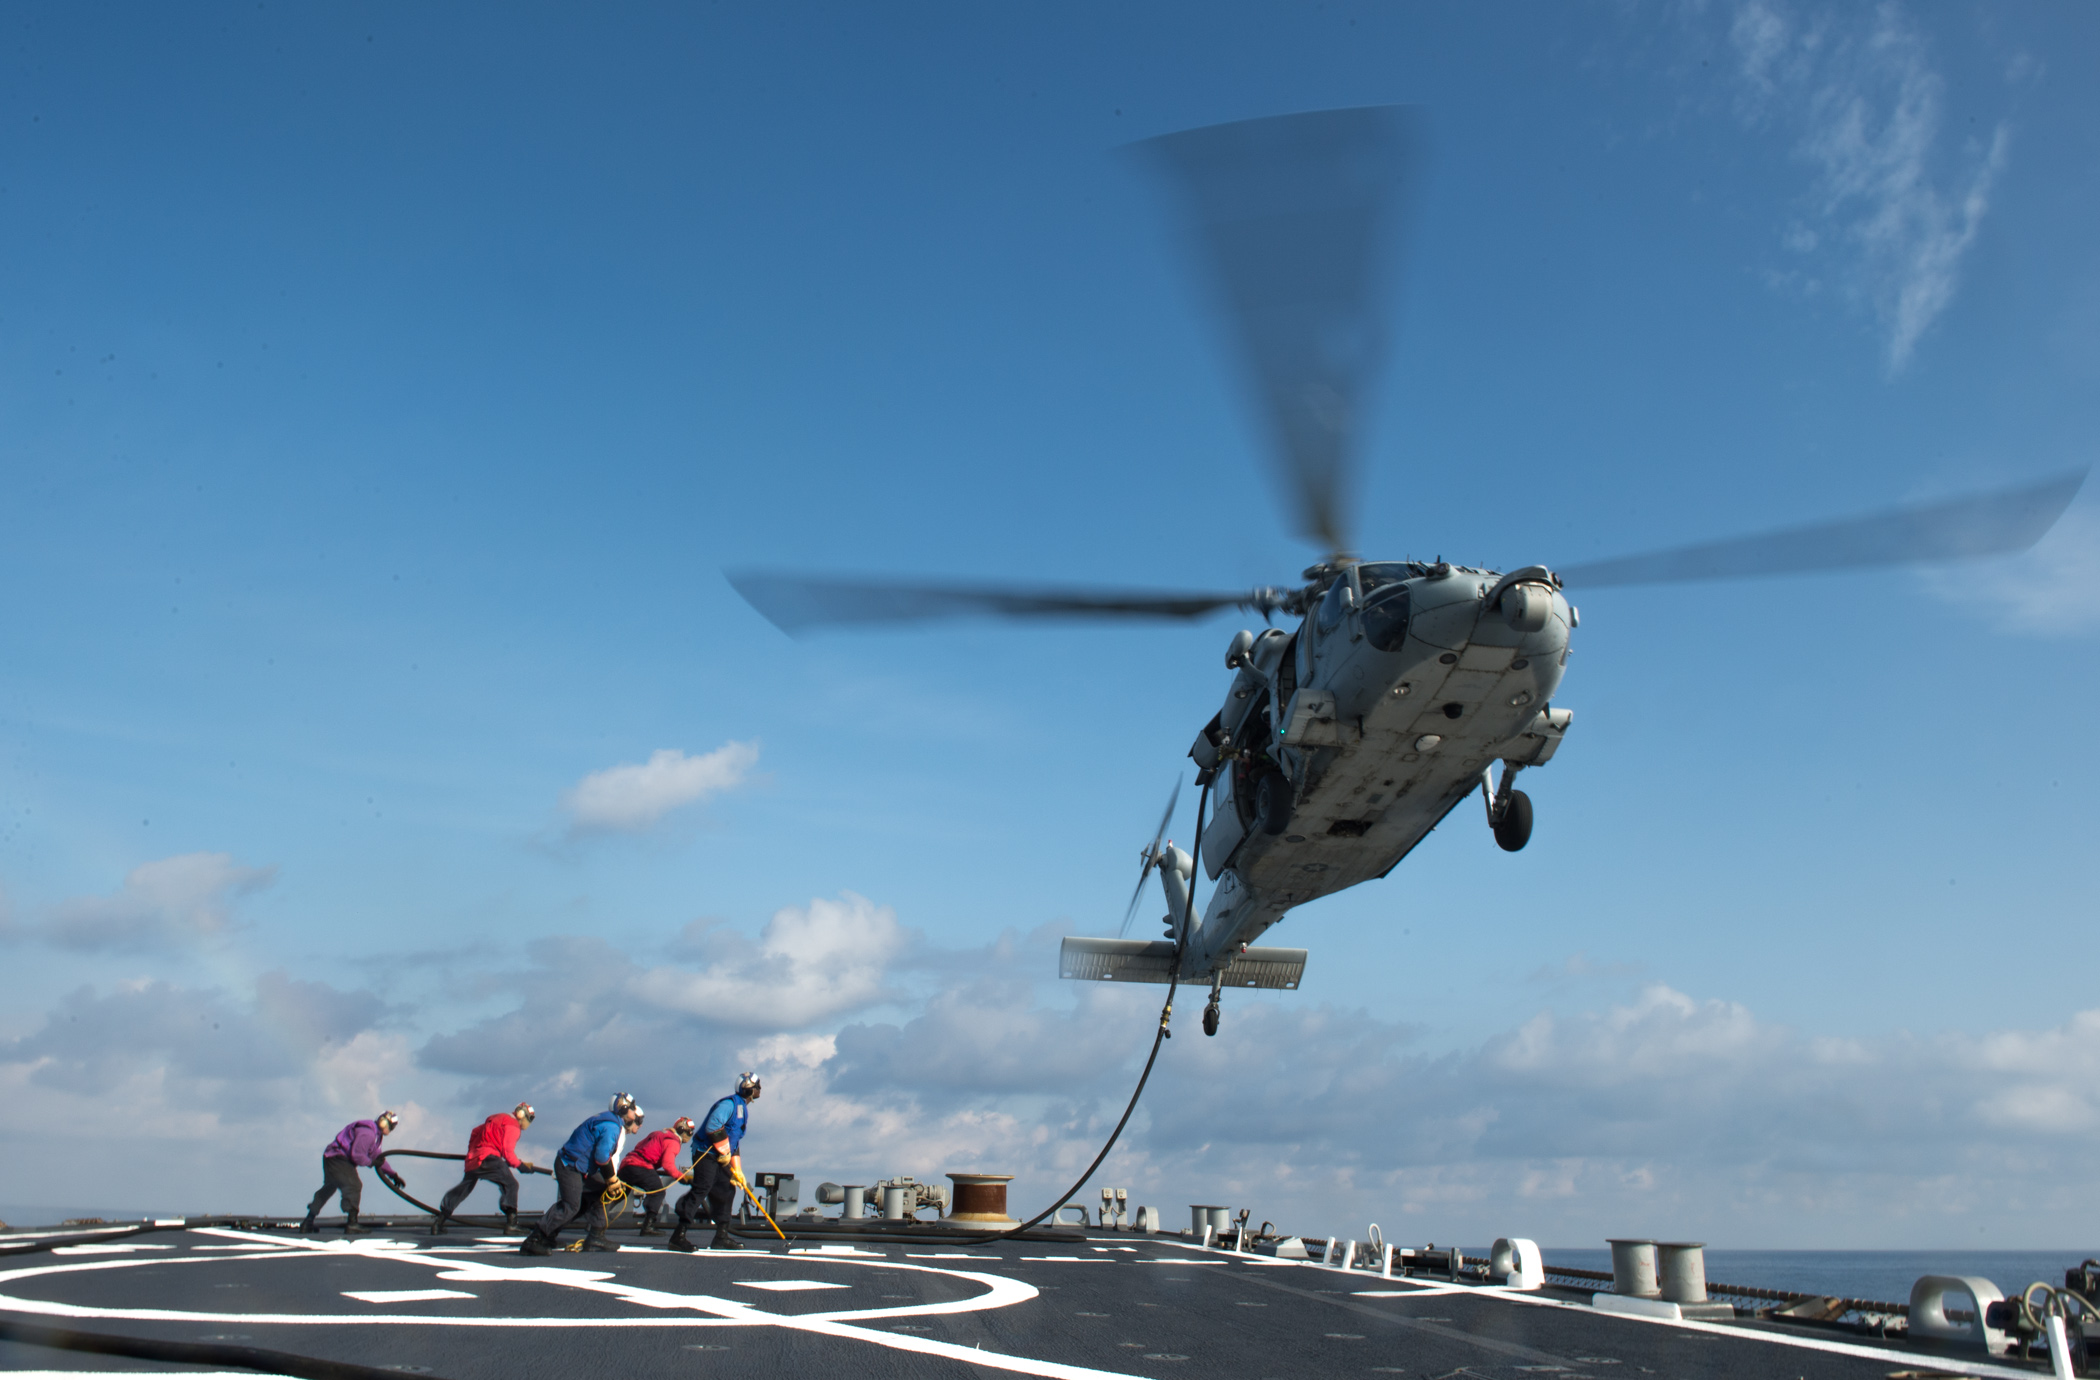 MEDITERANNEAN SEA (Nov. 24, 2014) Sailors from the Arleigh Burke-class guided-missile destroyer USS Donald Cook (DDG 75) perform a hot in-flight refueling with an MH-60S helicopter from the Dragon Whales of Helicopter Sea Combat Squadron (HSC) 28 during flight quarters. Donald Cook, homeported in Rota, Spain, is conducting naval operations in the U.S. 6th Fleet area of responsibility in support of U.S. national security interests in Europe. (U.S. Navy photo by Mass Communication Specialist 2nd Class Karolina A. Oseguera/Released)